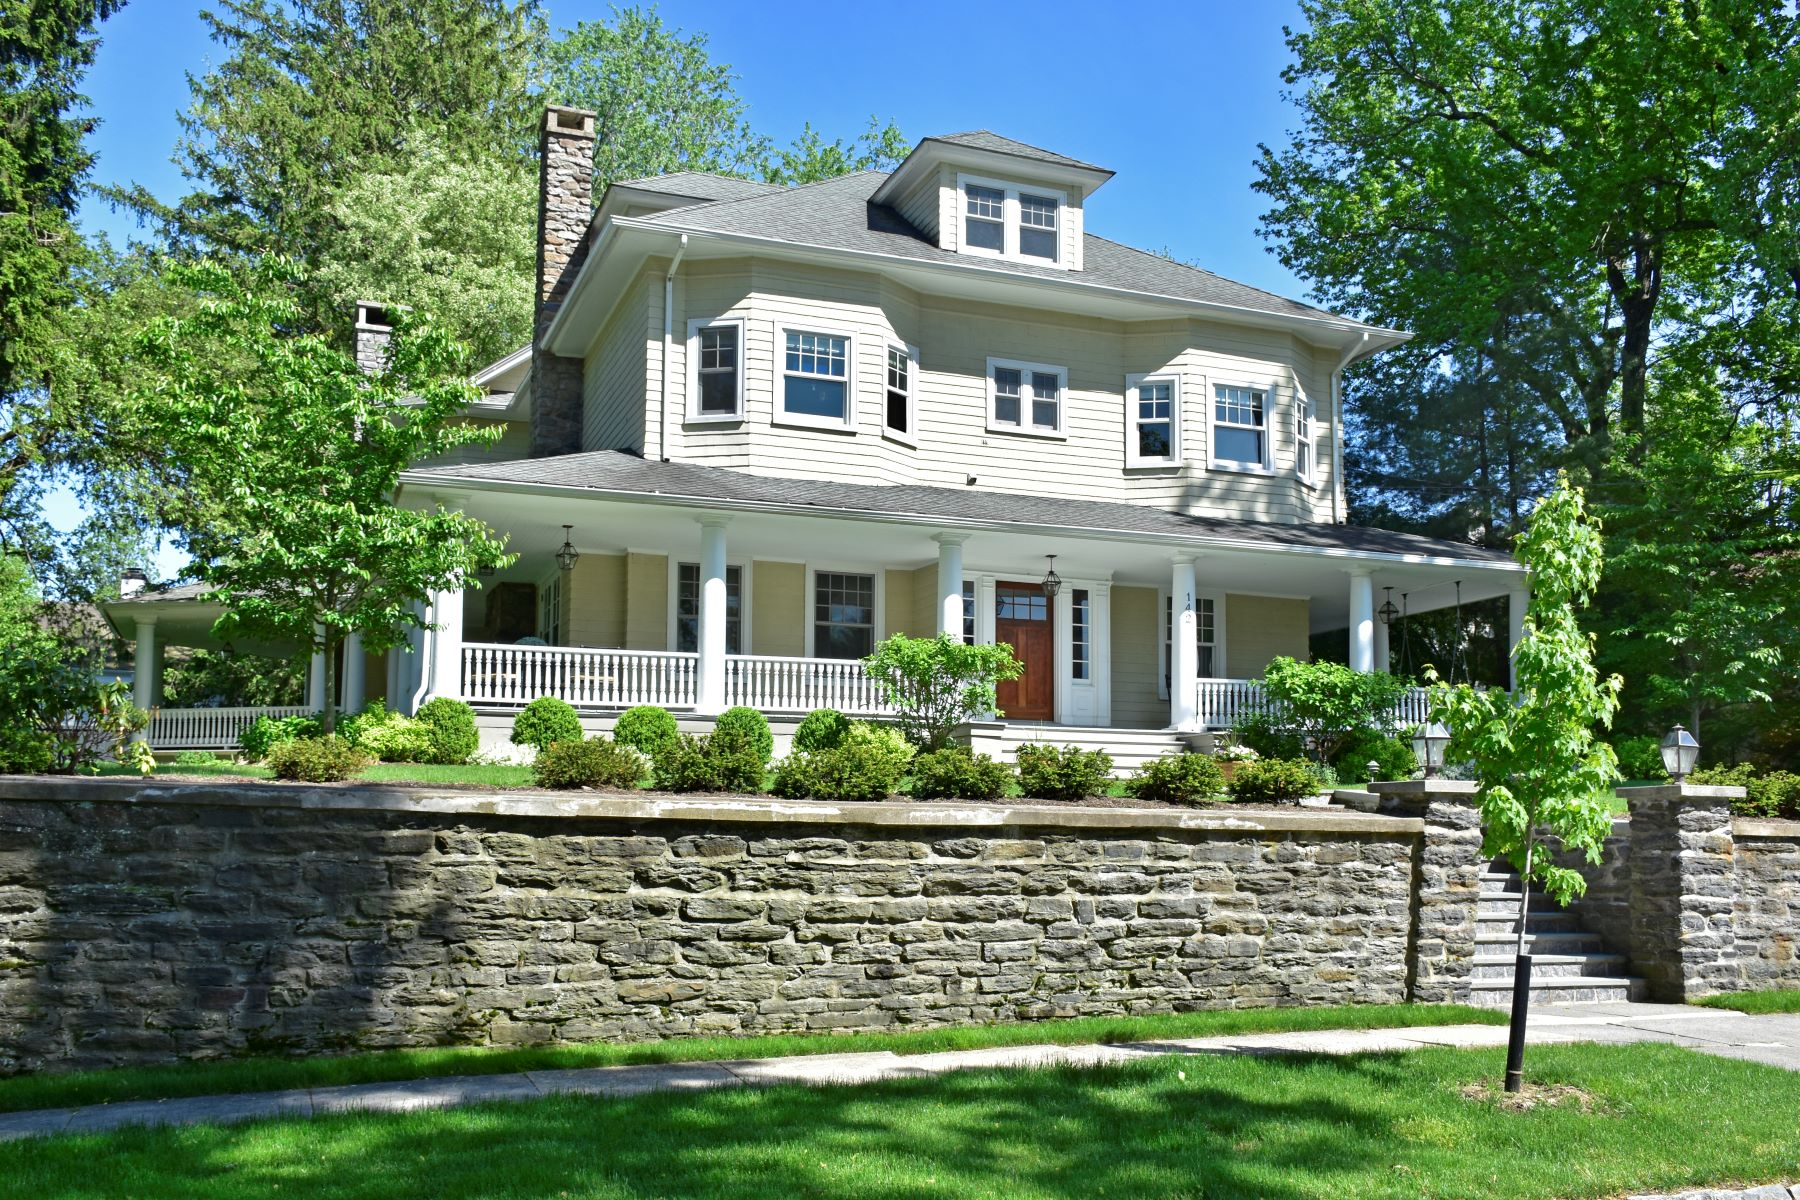 Single Family Home for Sale at Pelham Heights Perfection 142 Monterey Avenue Pelham, New York 10803 United States